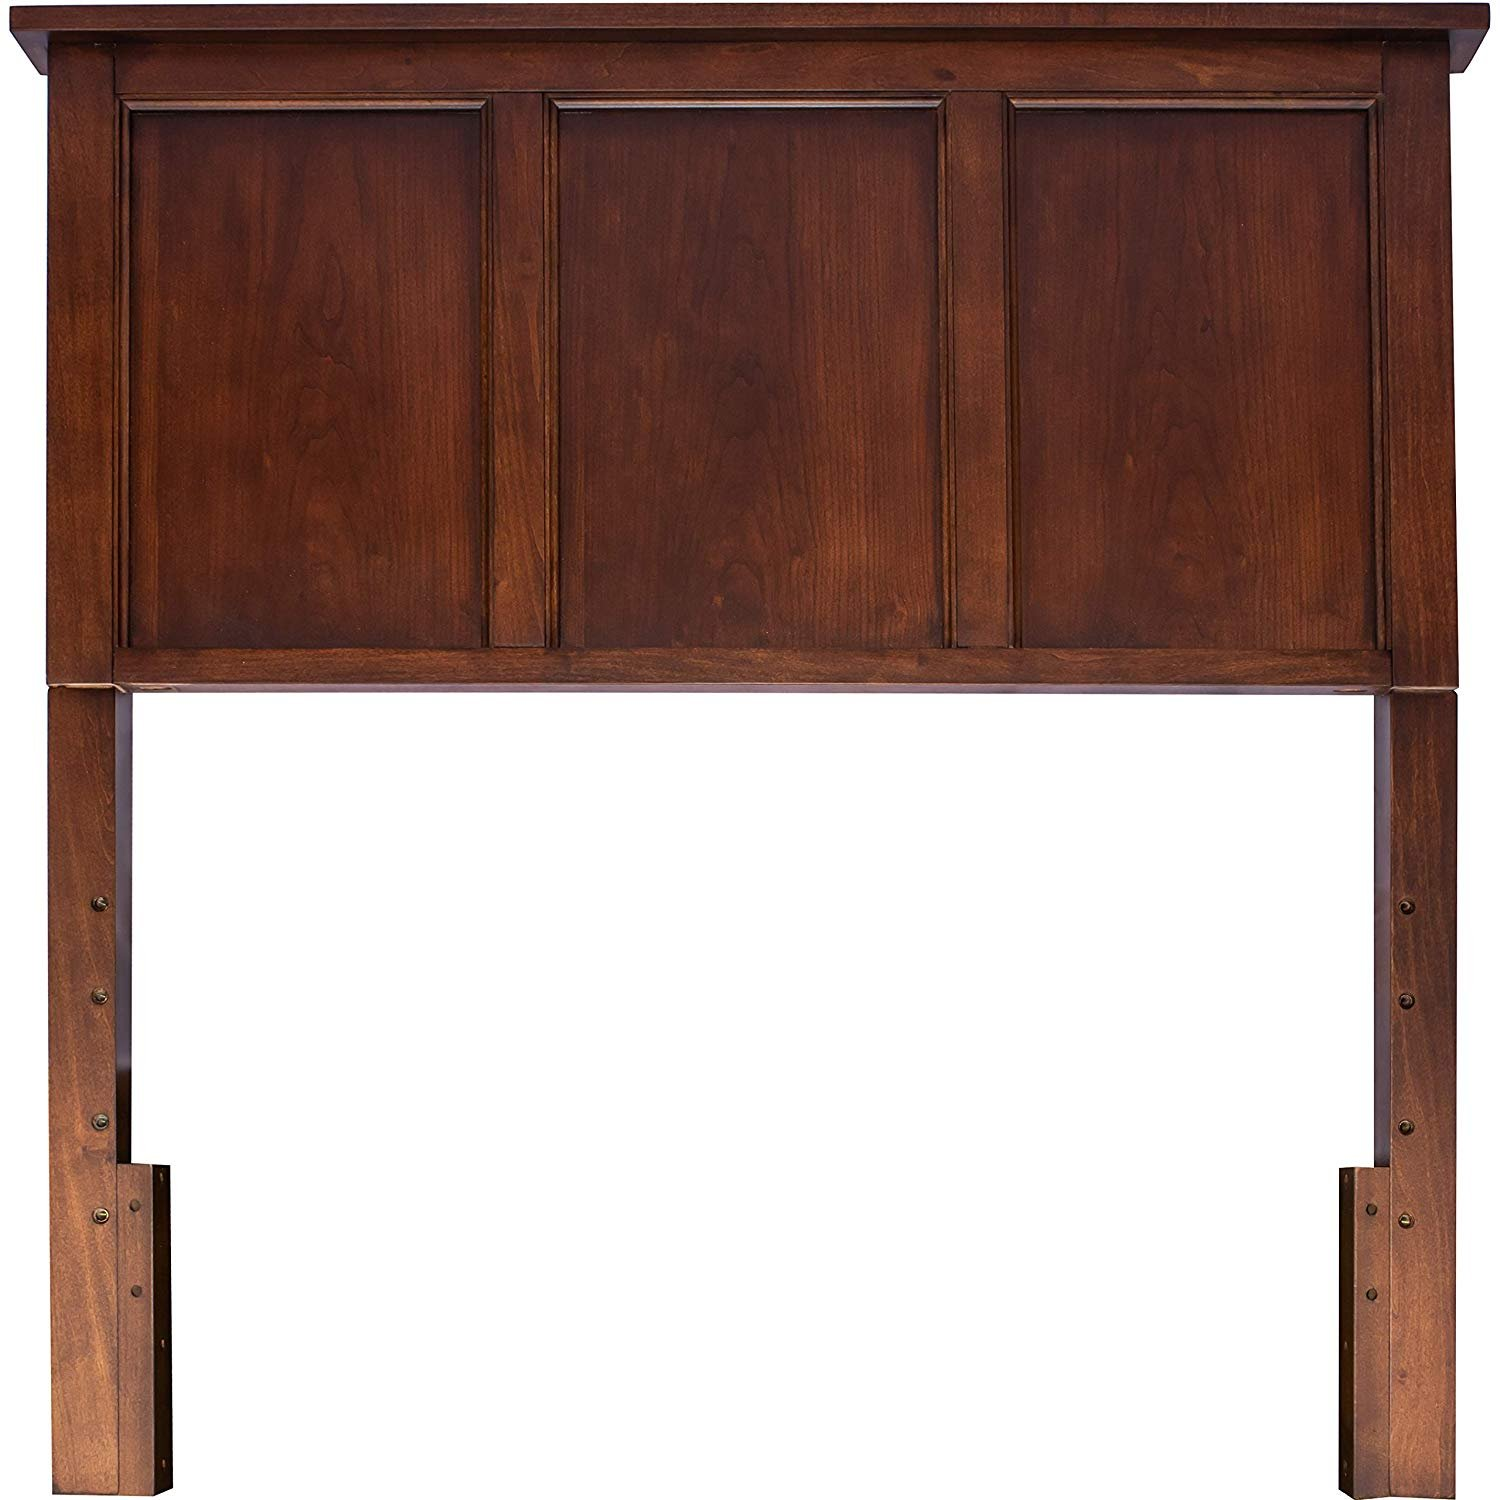 Timeless Espresso Wooden Twin Headboard and Mounting Hardware. Classic Panel Design Great for